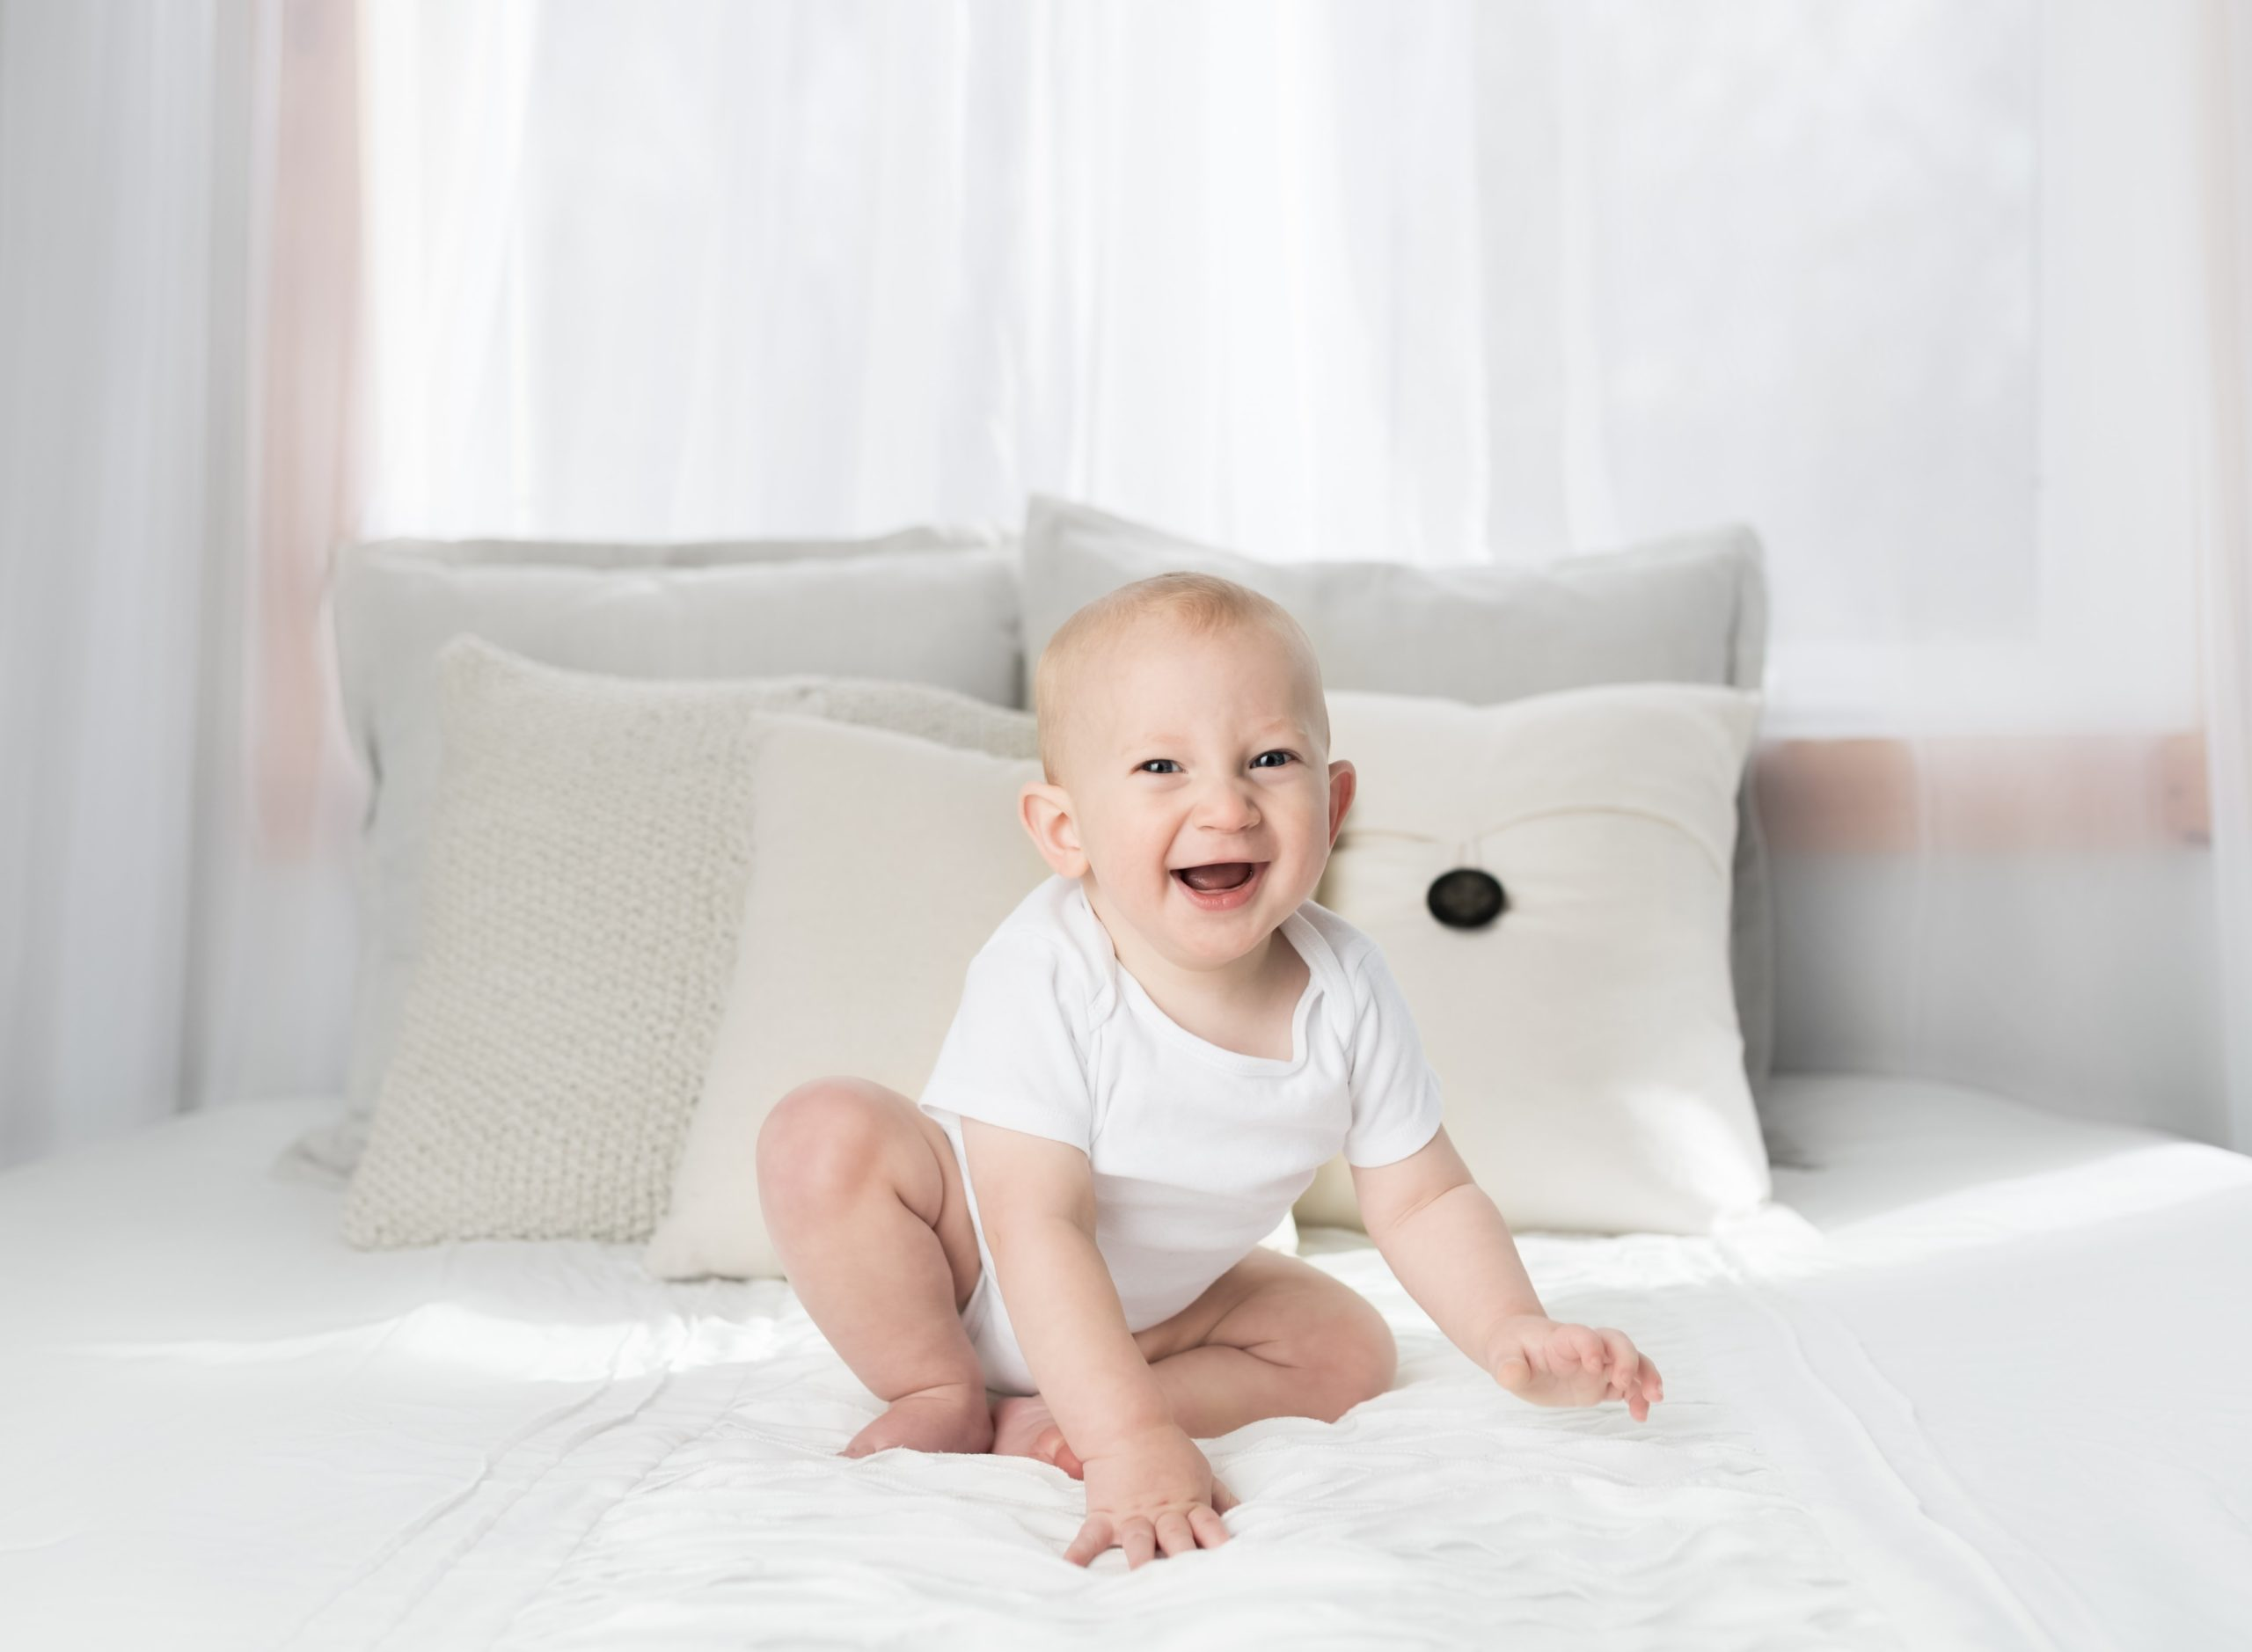 Toddler sitting on white bed | Tips For Moving Baby From The Crib To The Big Kid Bed